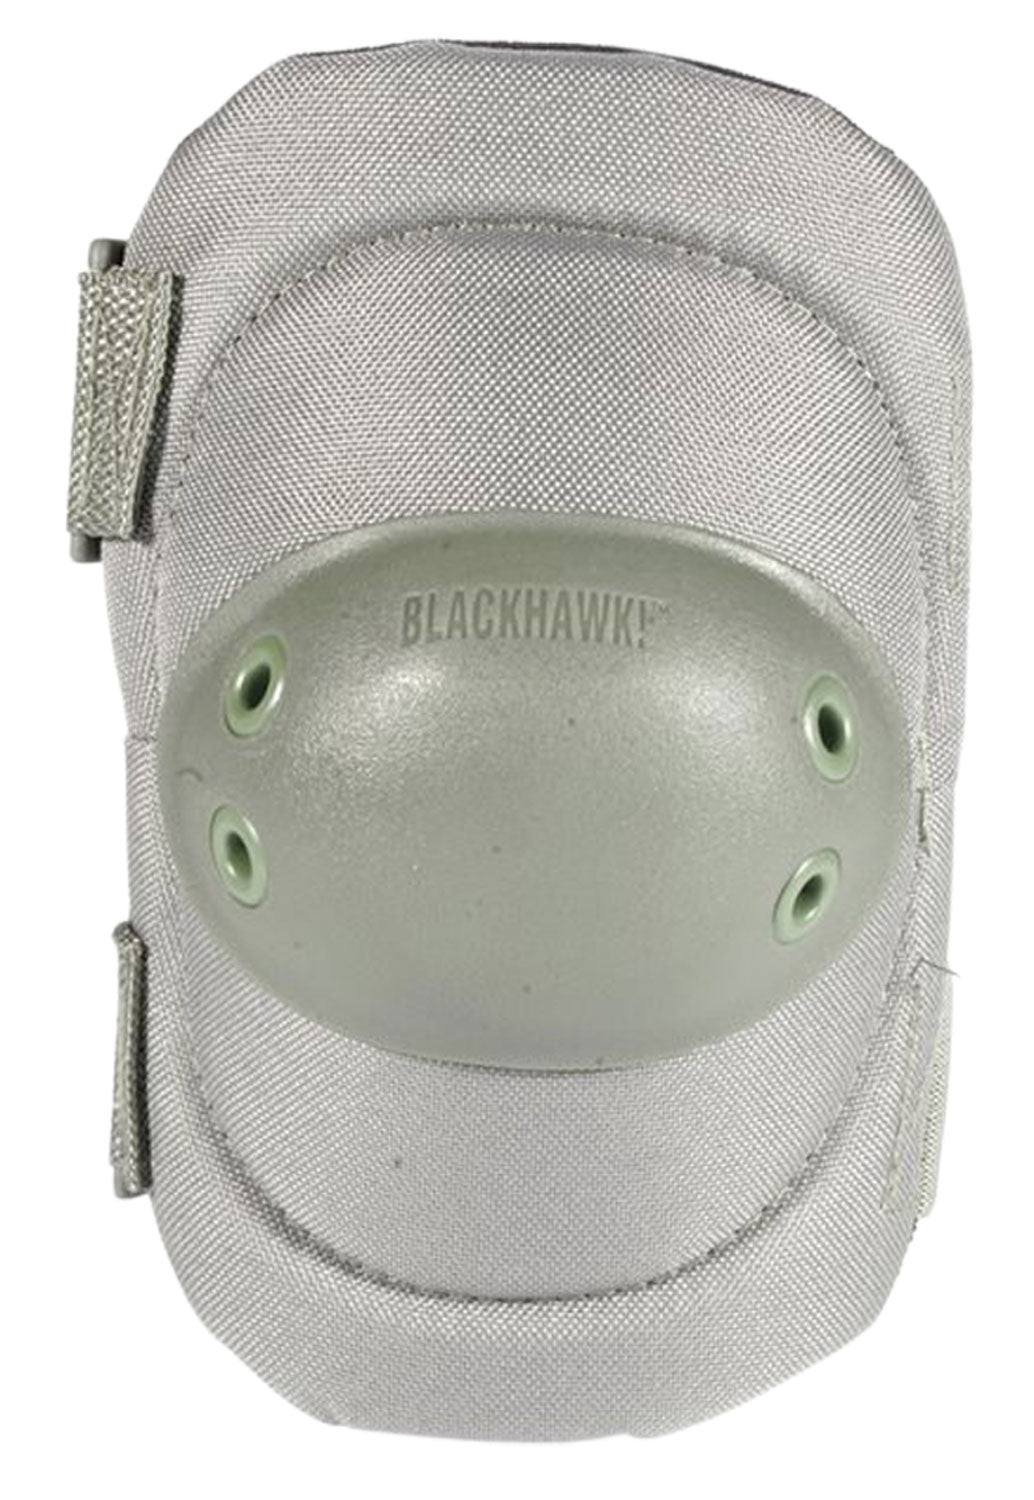 BHWK 802600CT TACT ELBOW PADS TAN